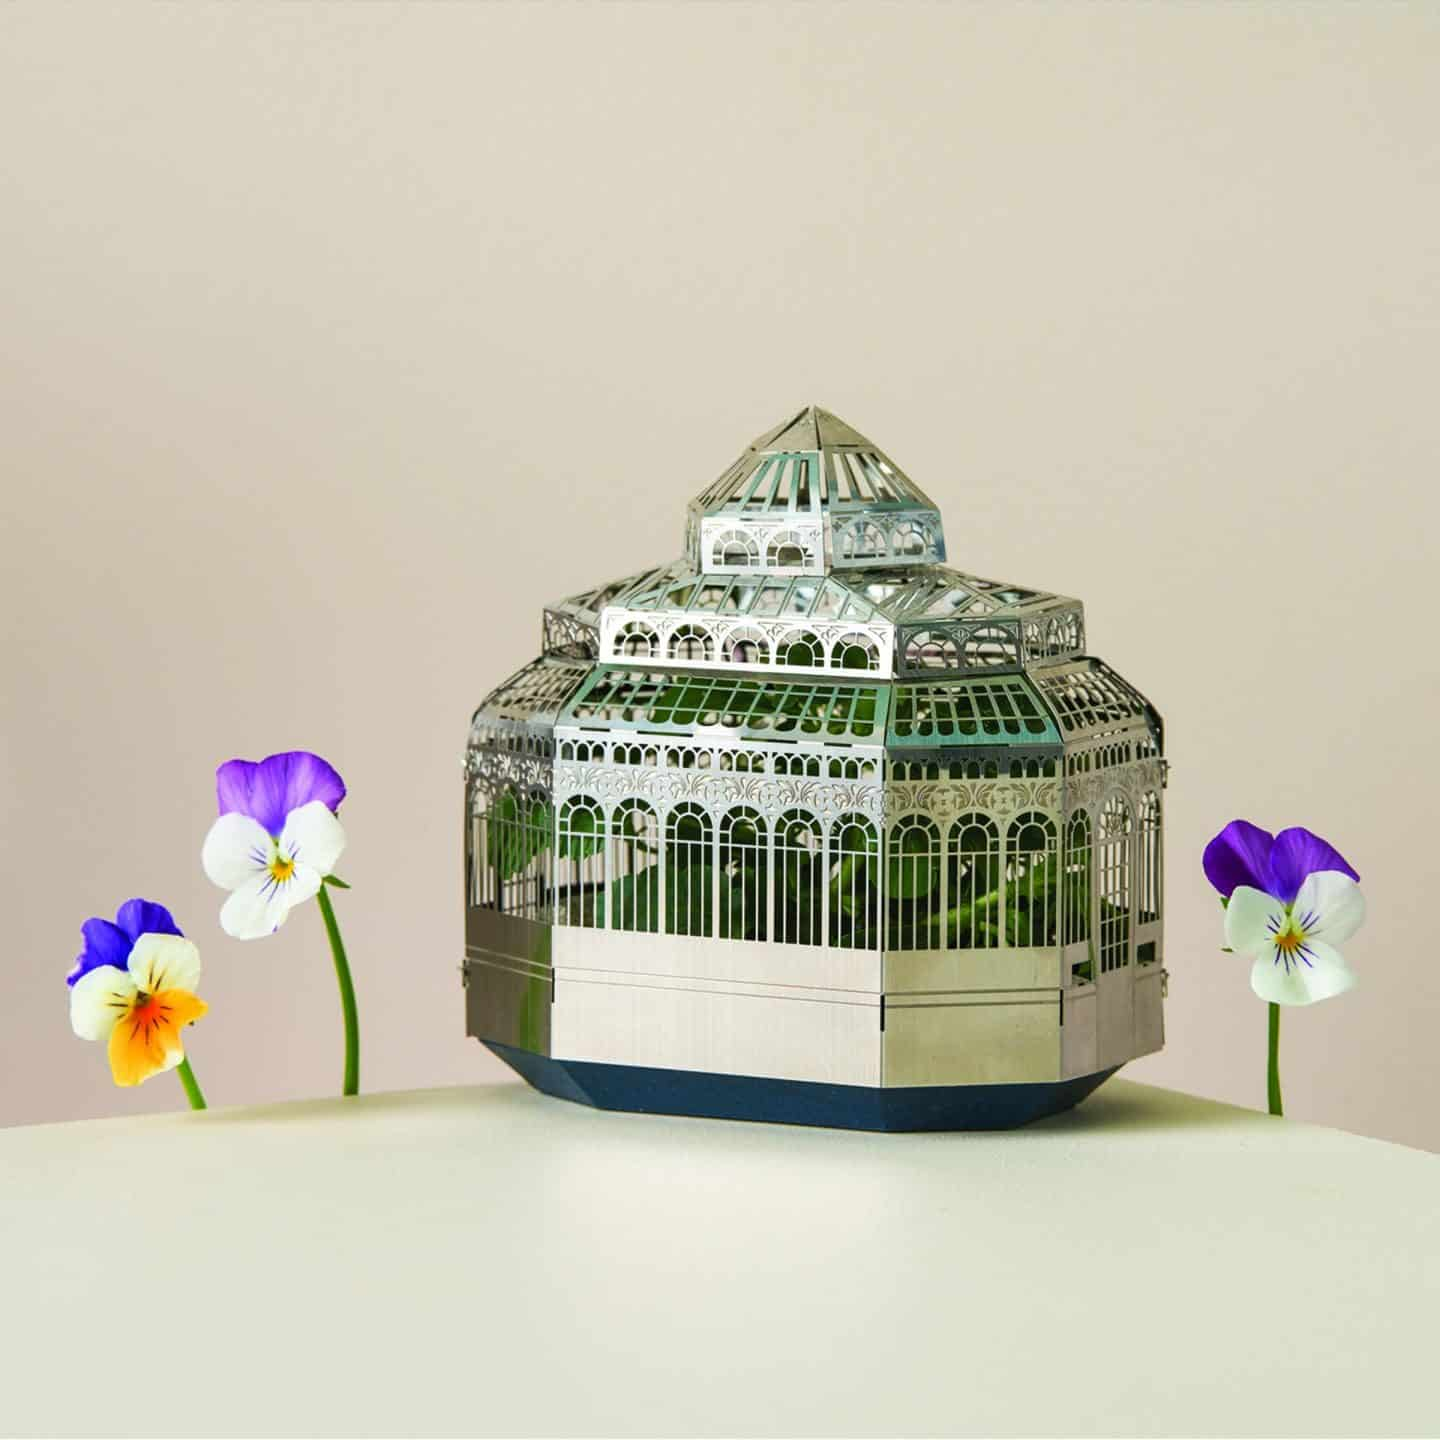 Gifts for plant lovers. This metal miniature plant terrarium kit is from Another Studio